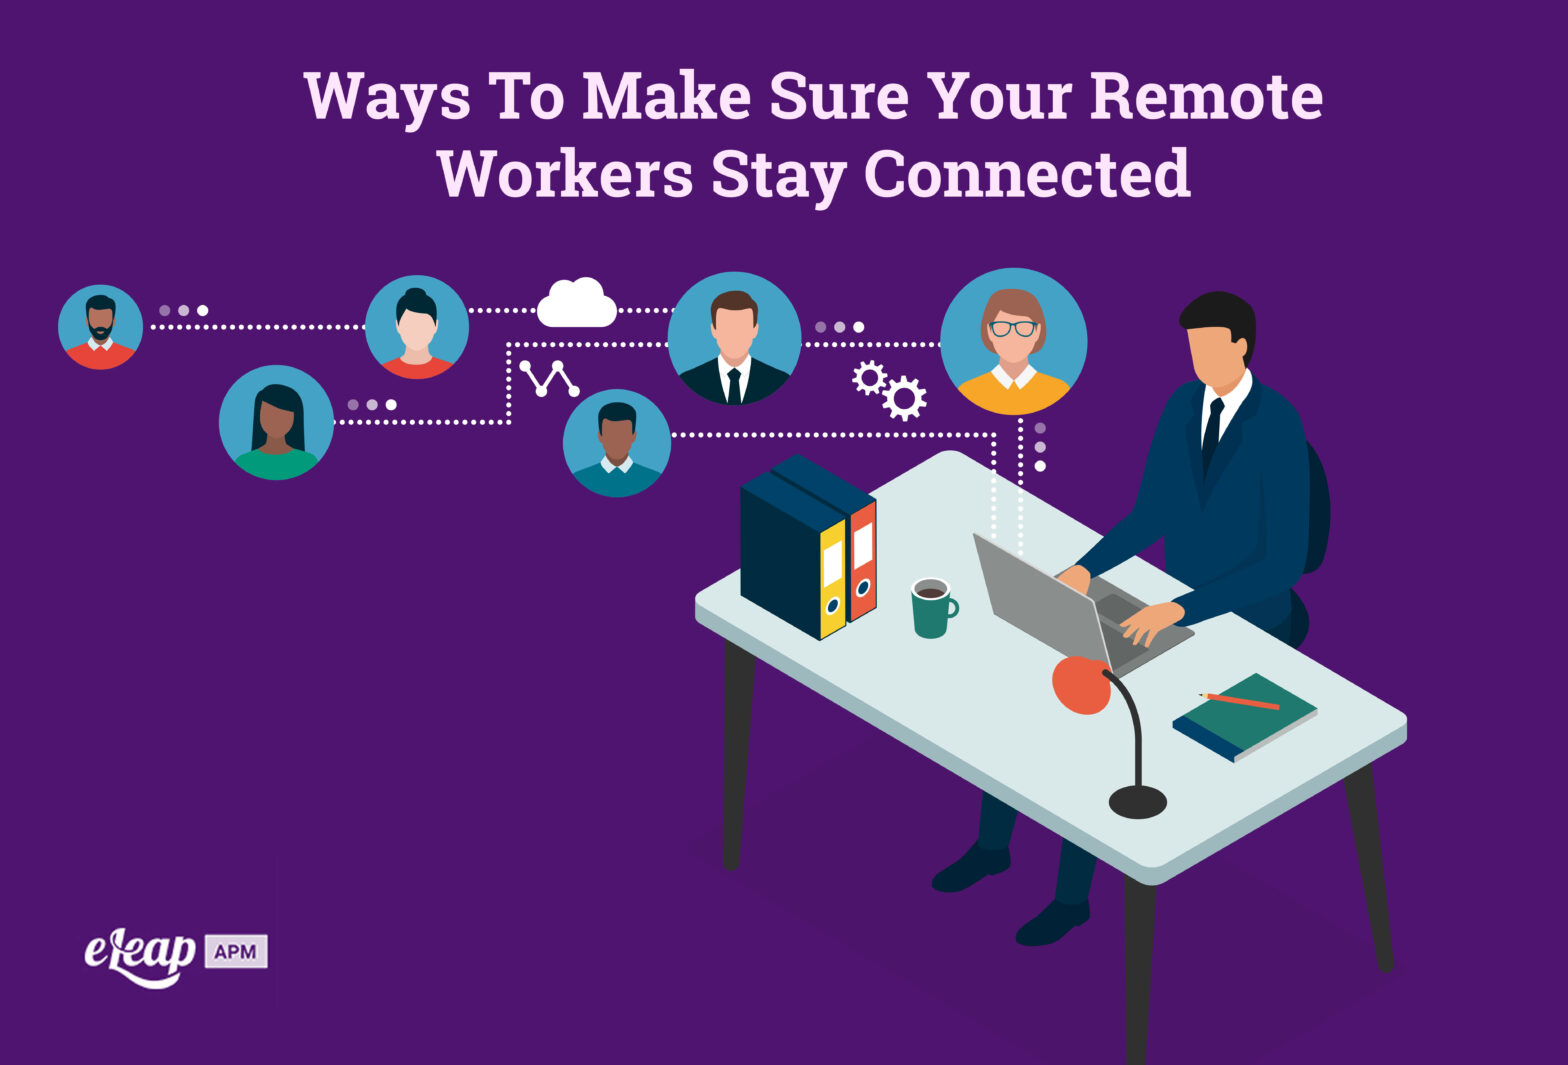 Ways To Make Sure Your Remote Workers Stay Connected